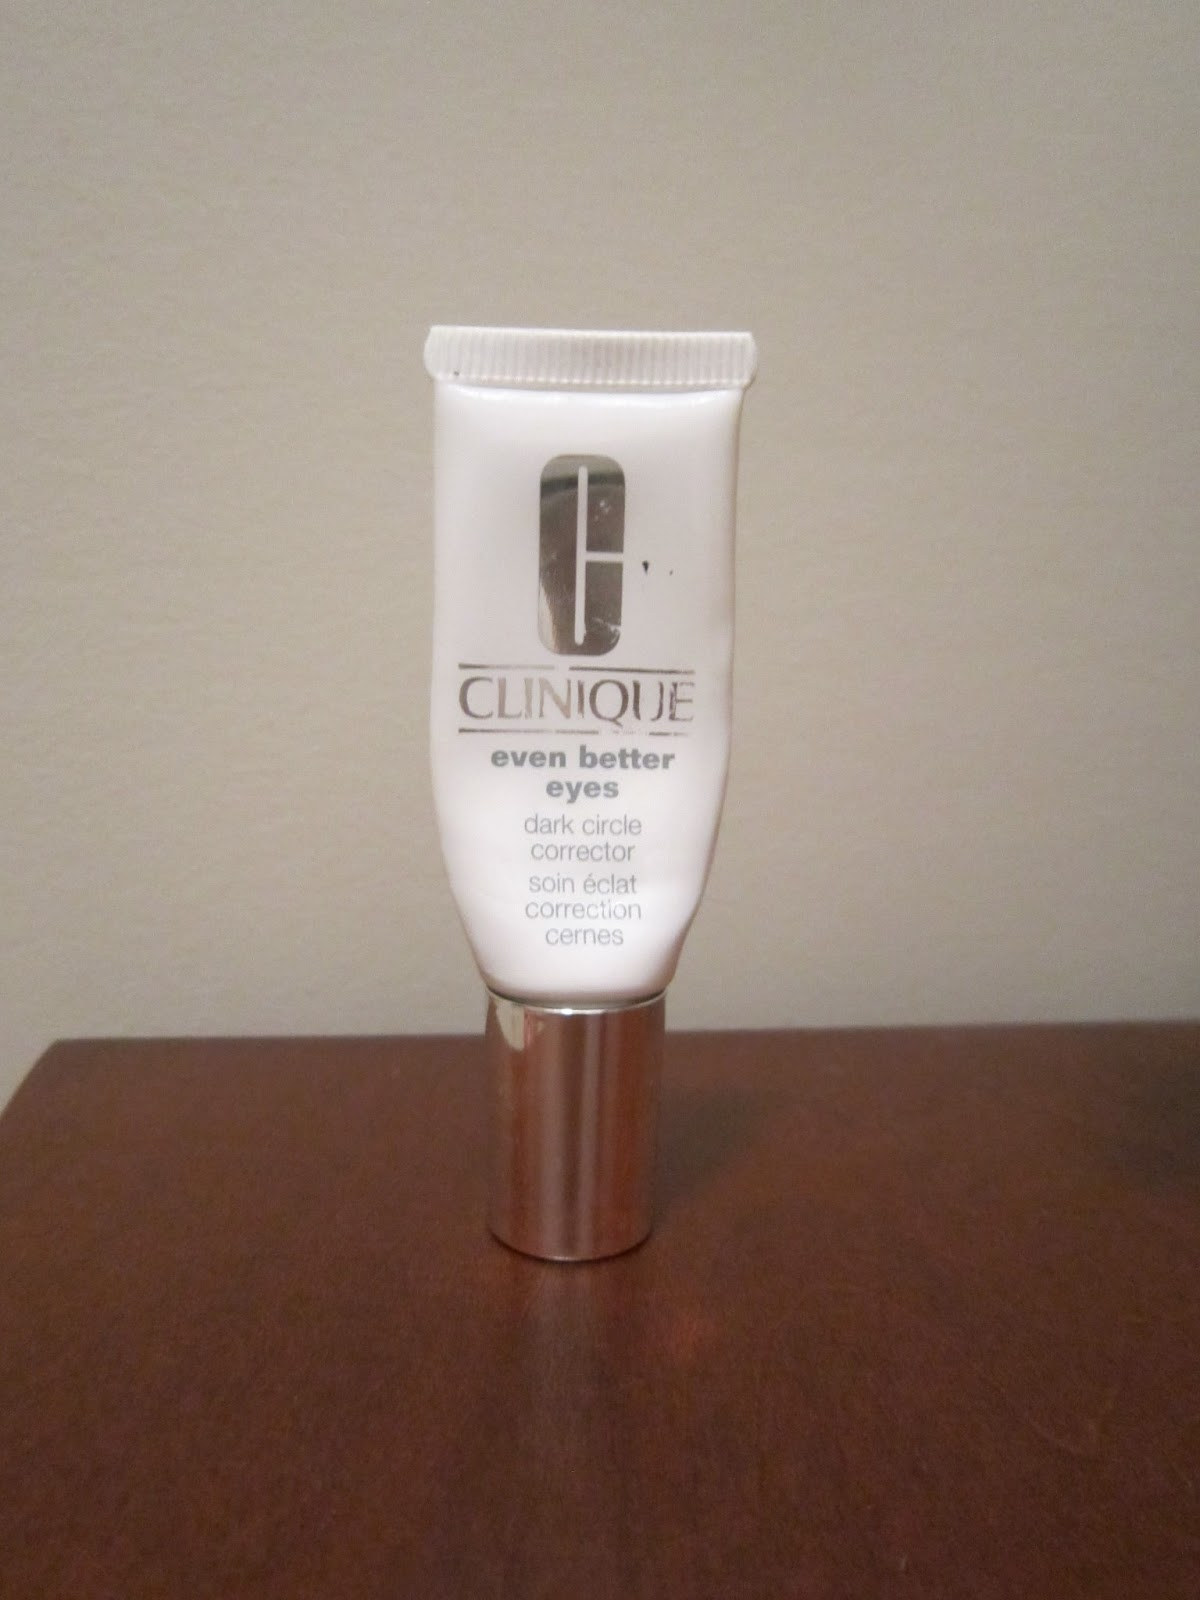 My Makeup Issues: Clinique Even Better Eyes Dark Circle